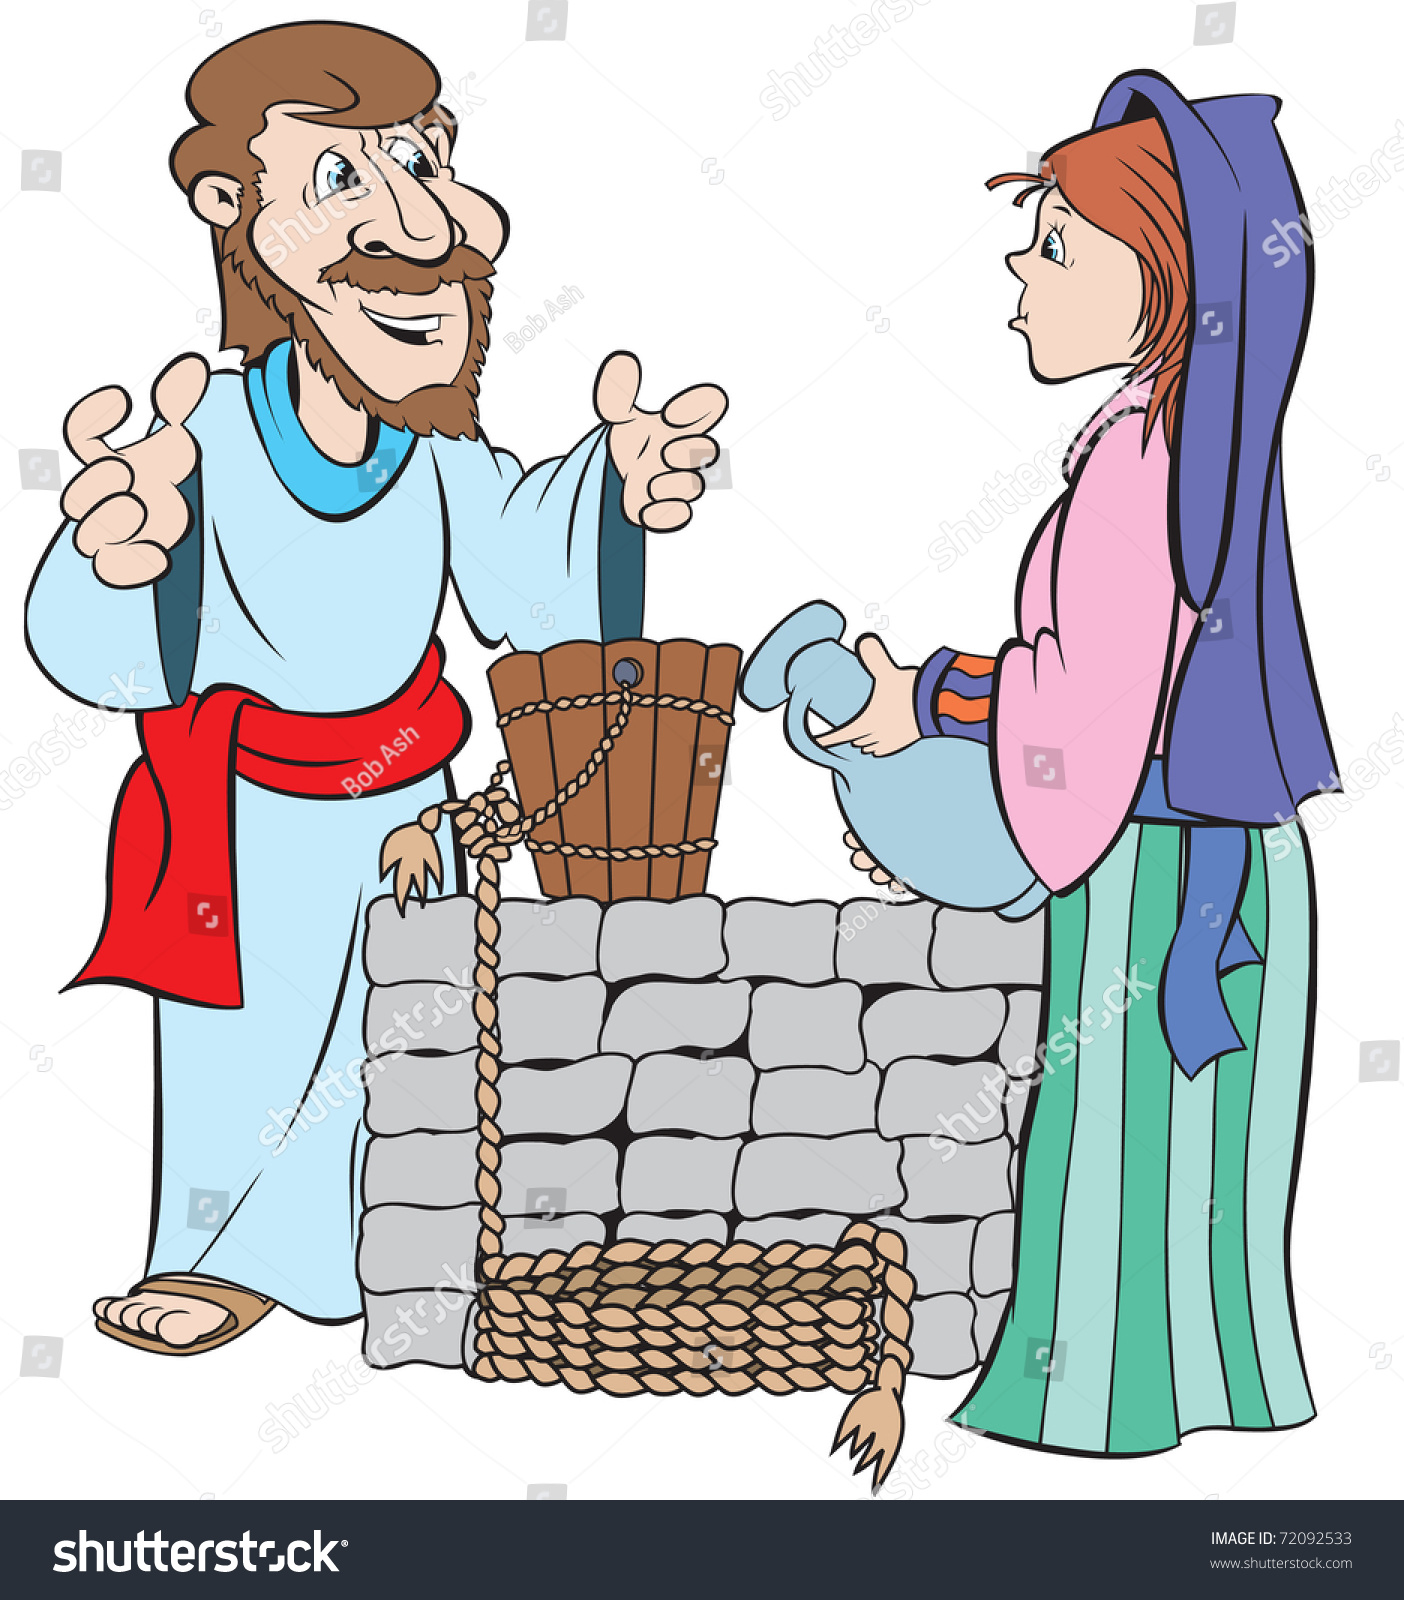 clipart jesus and the woman at the well - photo #20